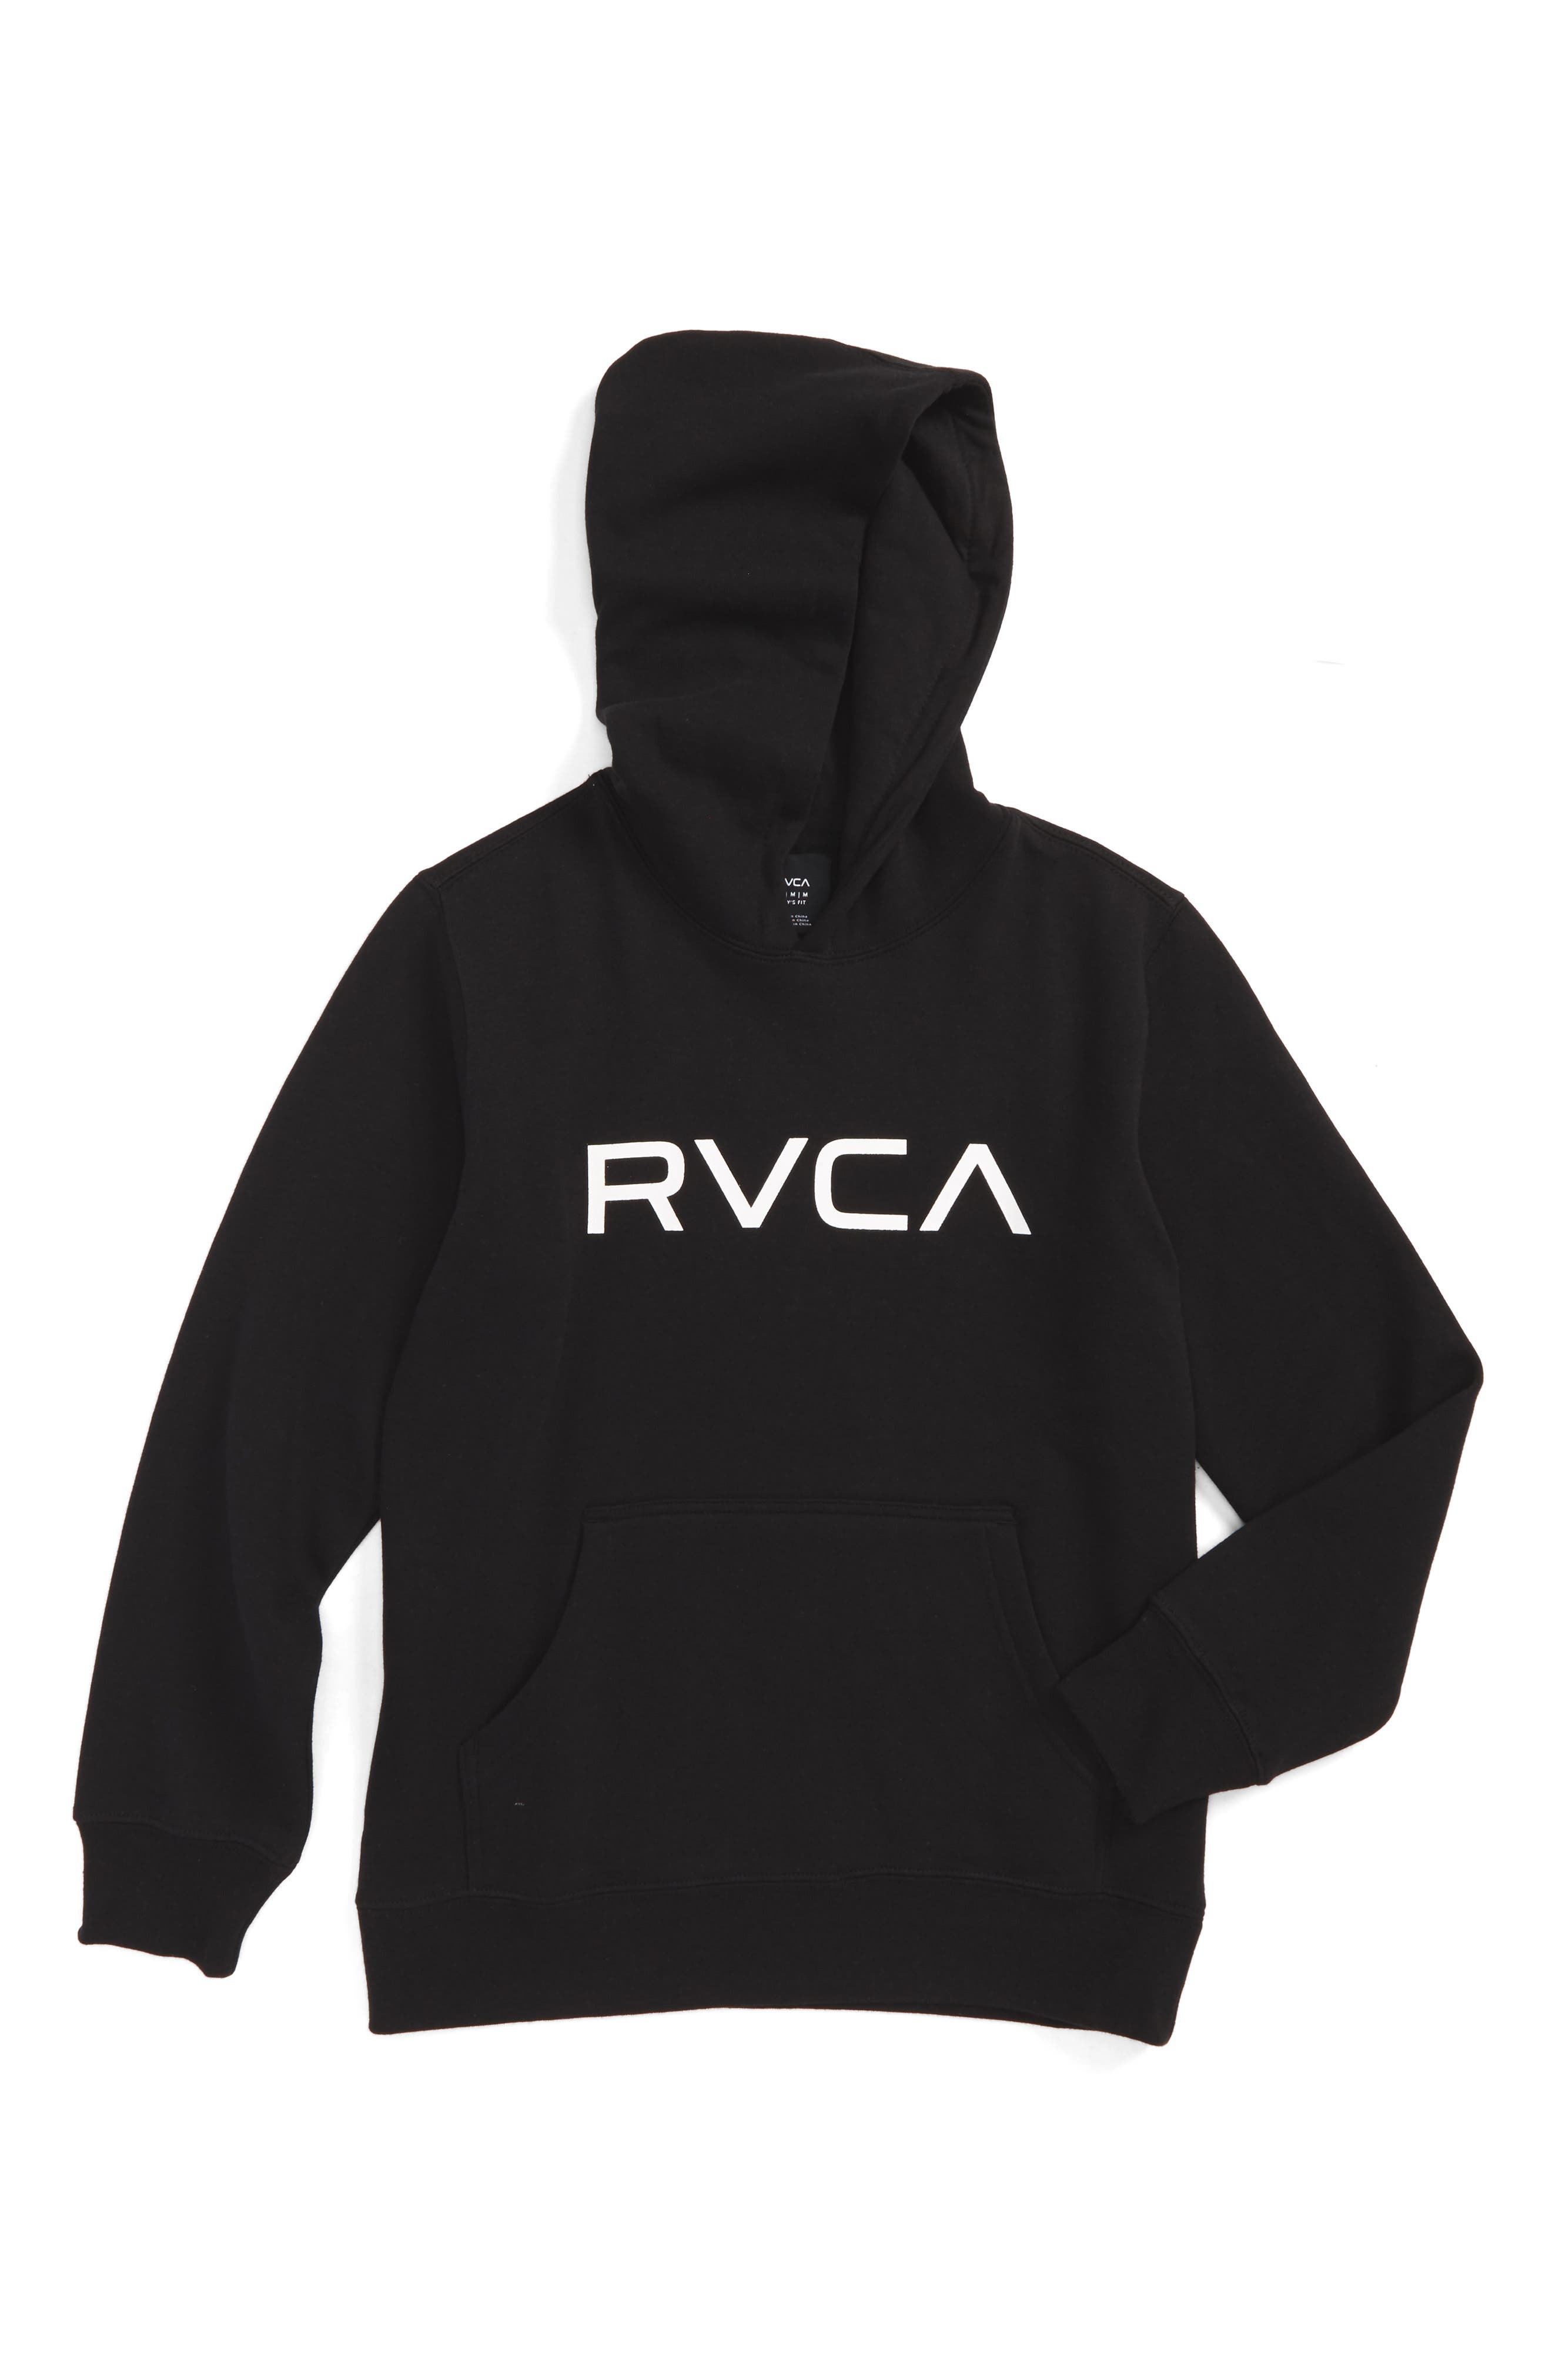 Alternate Image 1 Selected - RVCA Big Logo Hoodie (Big Boys)